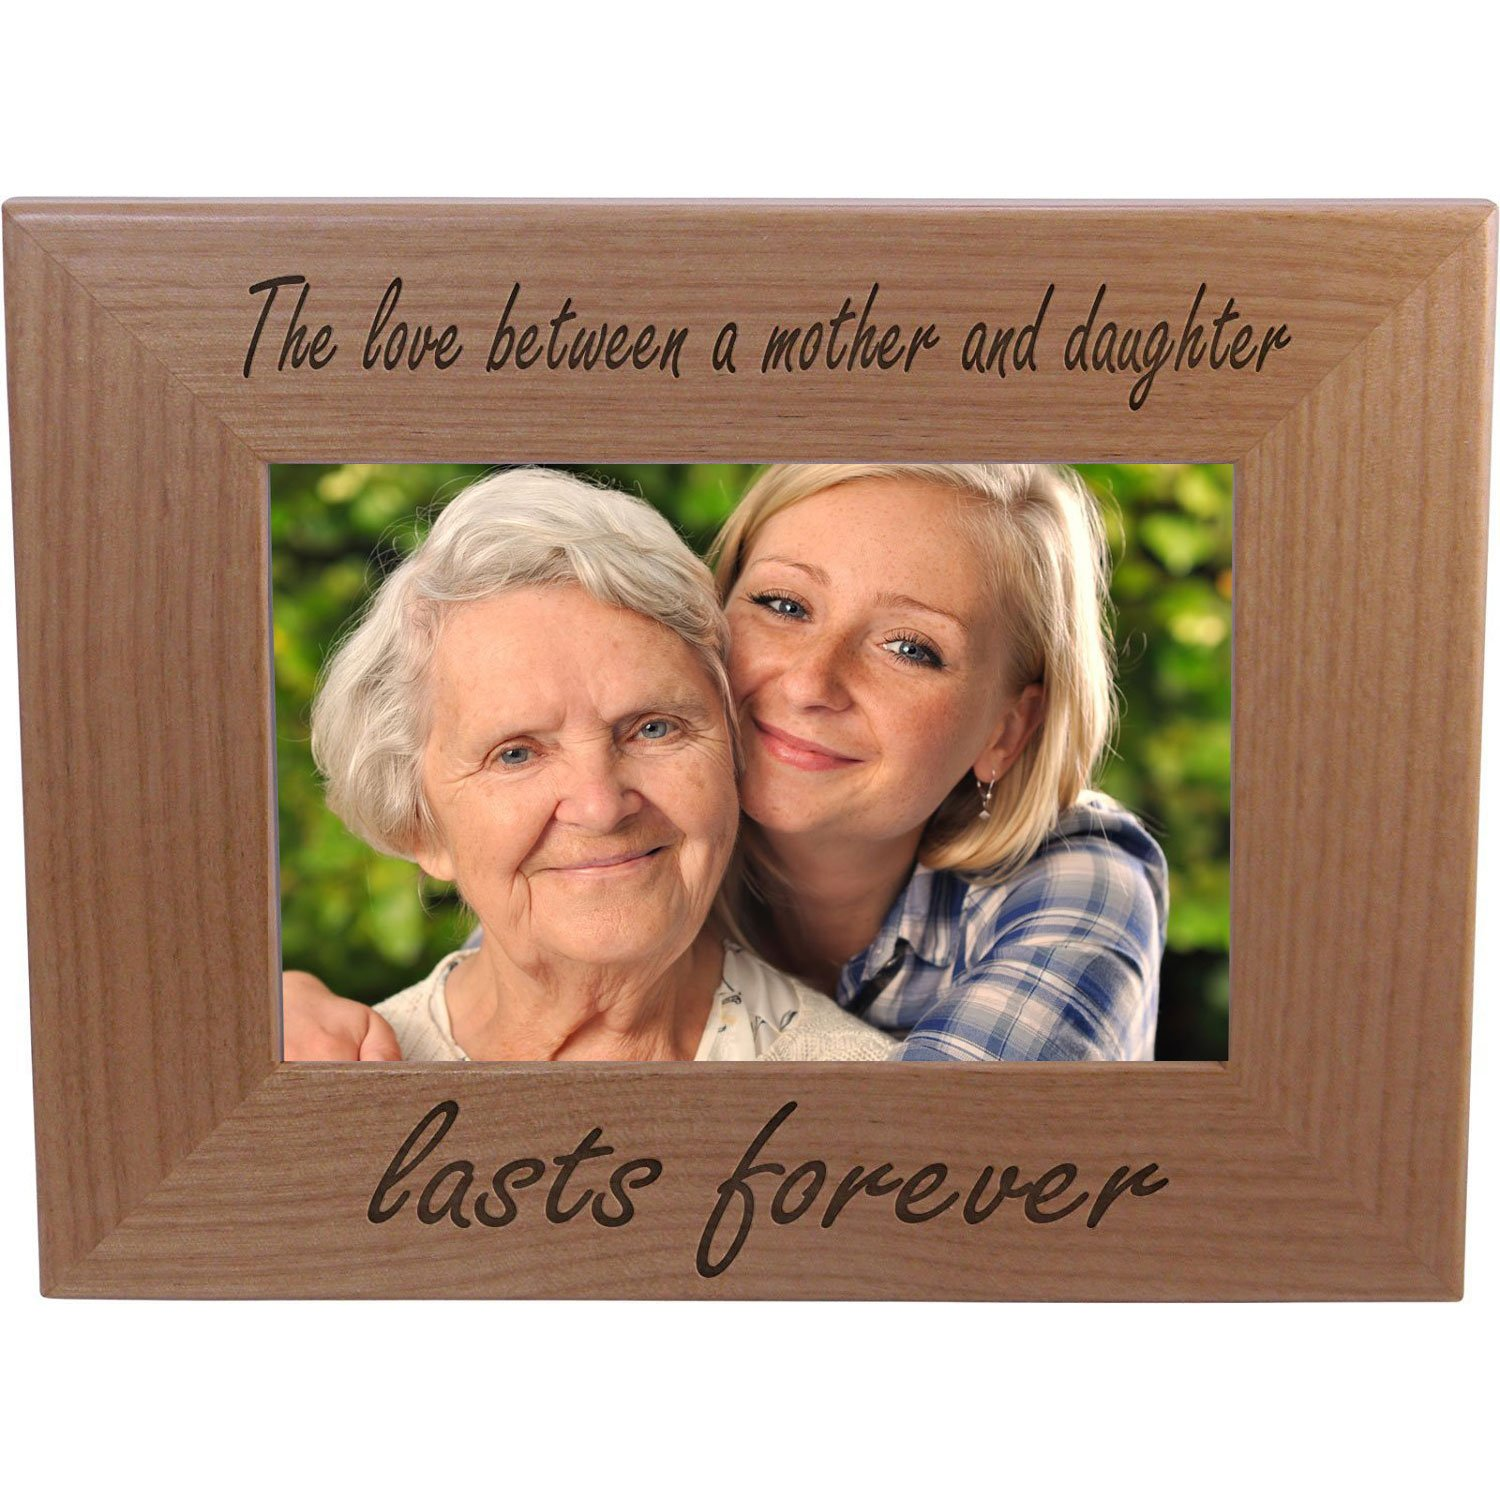 The Love Between A Mother And Daughter Lasts Forever Wood Picture Frame - Great Gift for Mothers Day, Birthday or for Mom Grandma Wife Grandmother